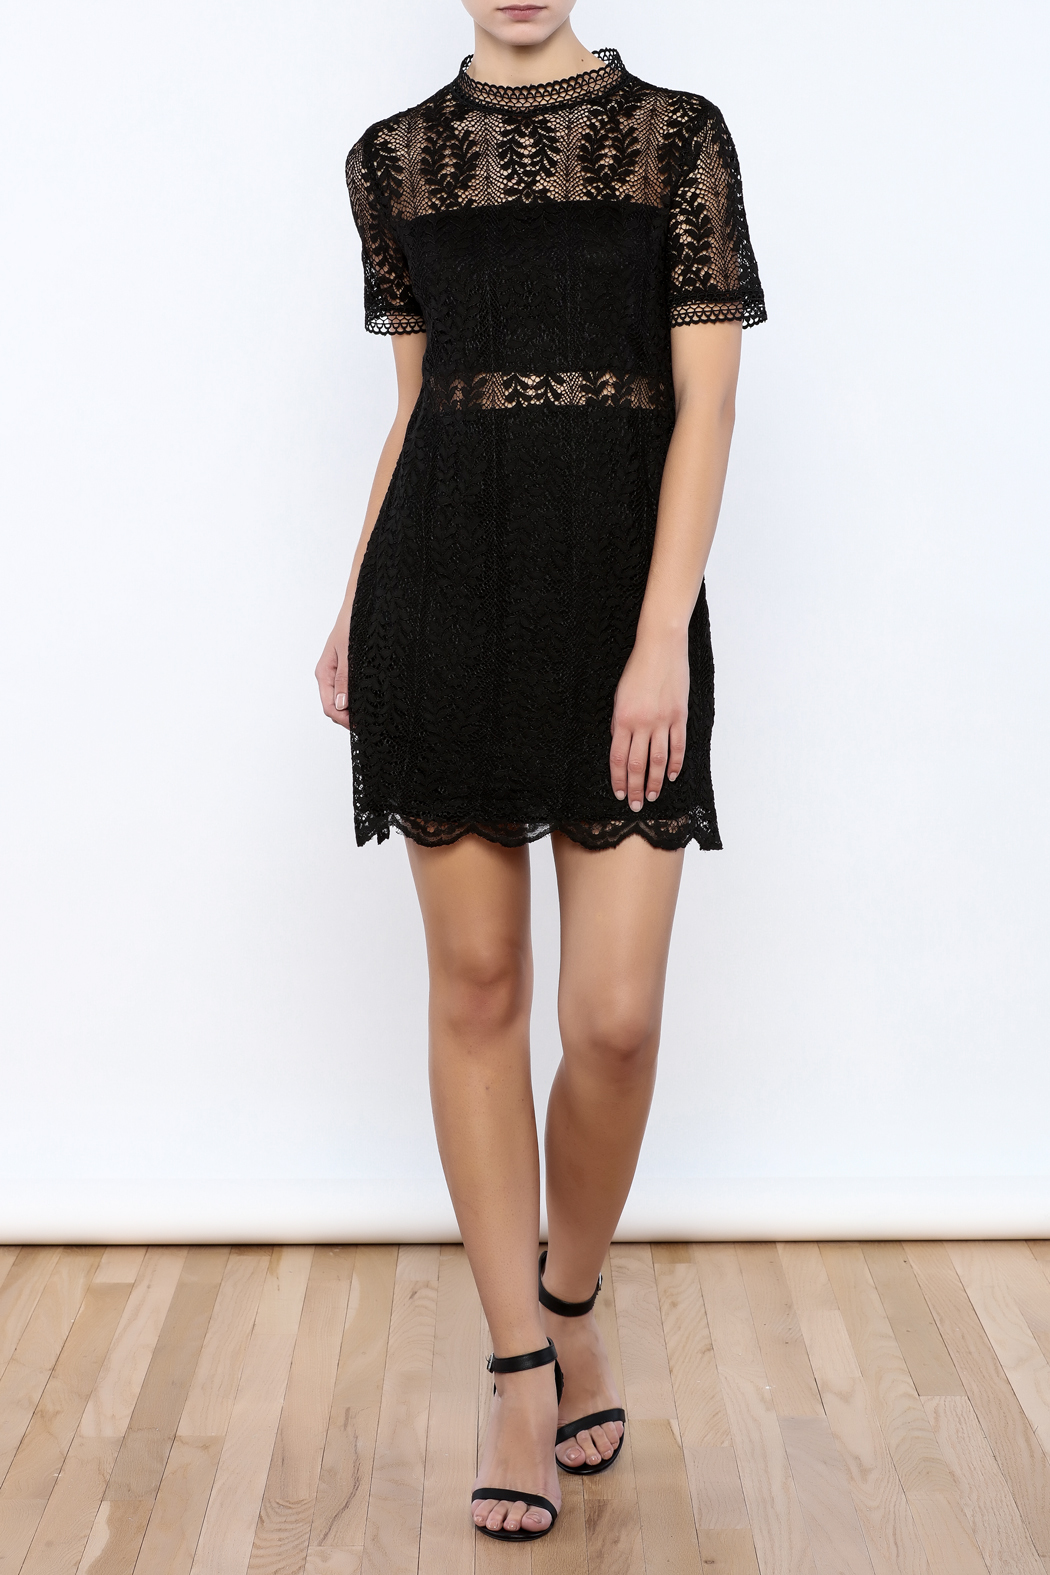 MinkPink Tell Tale Lace Dress from Marina by y i clothing boutique ... 68fabf1dc